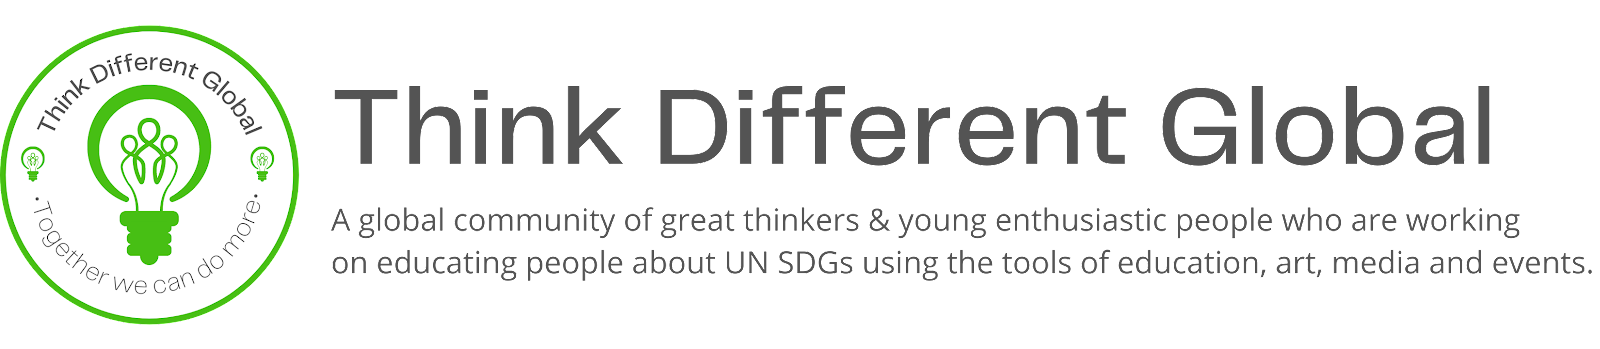 Think Different Global